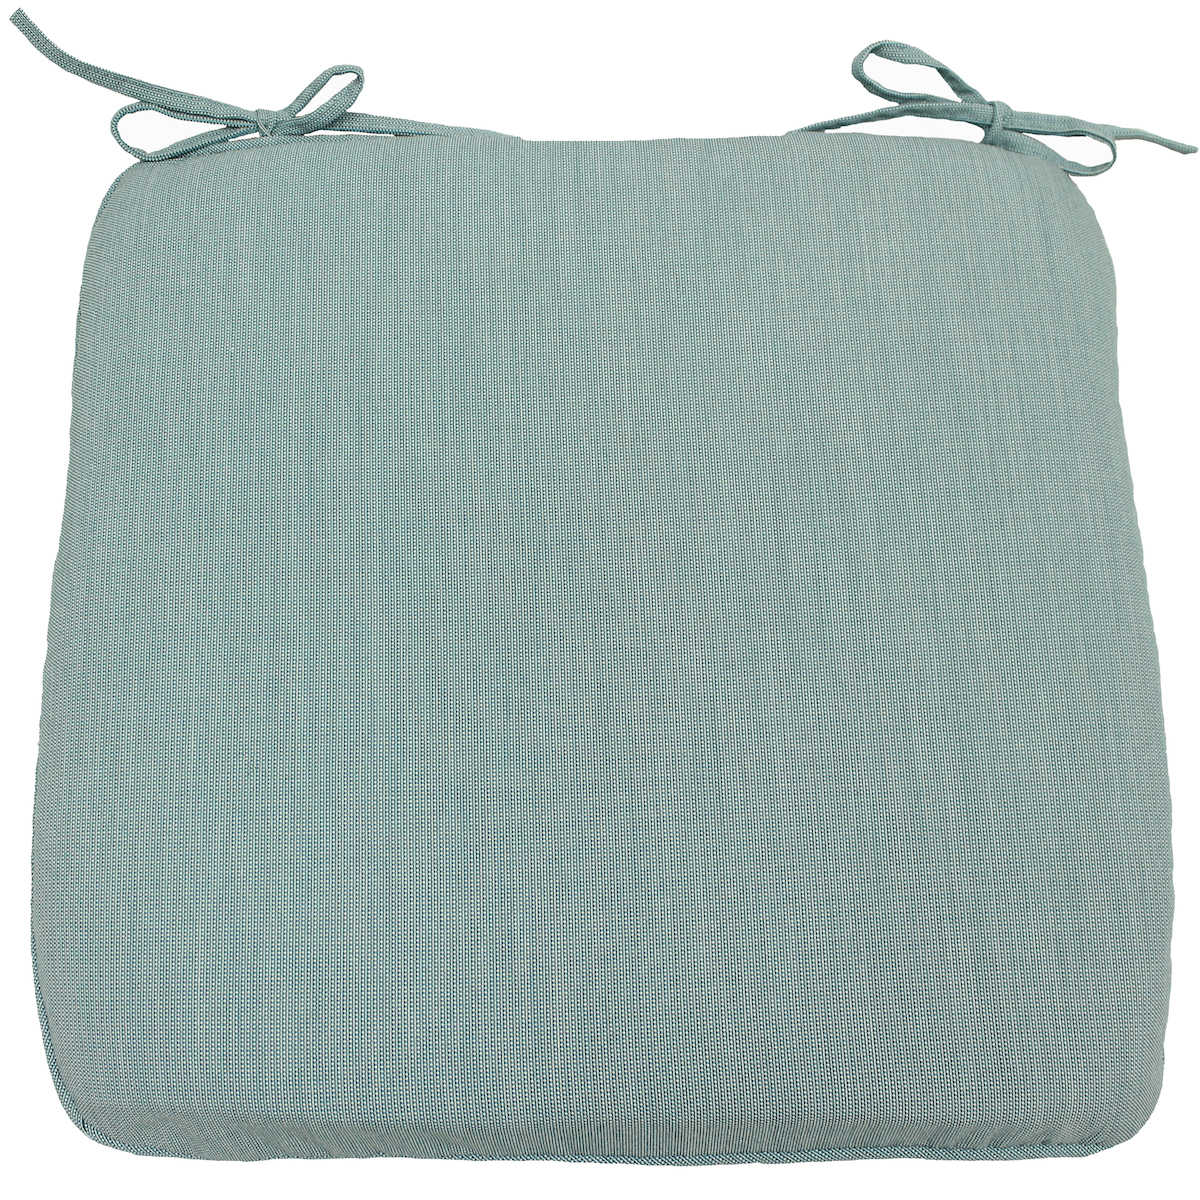 Better Homes and Gardens Spa Universal Seat Pad - Set of 2 19 inch x 18 inch x 3 inch